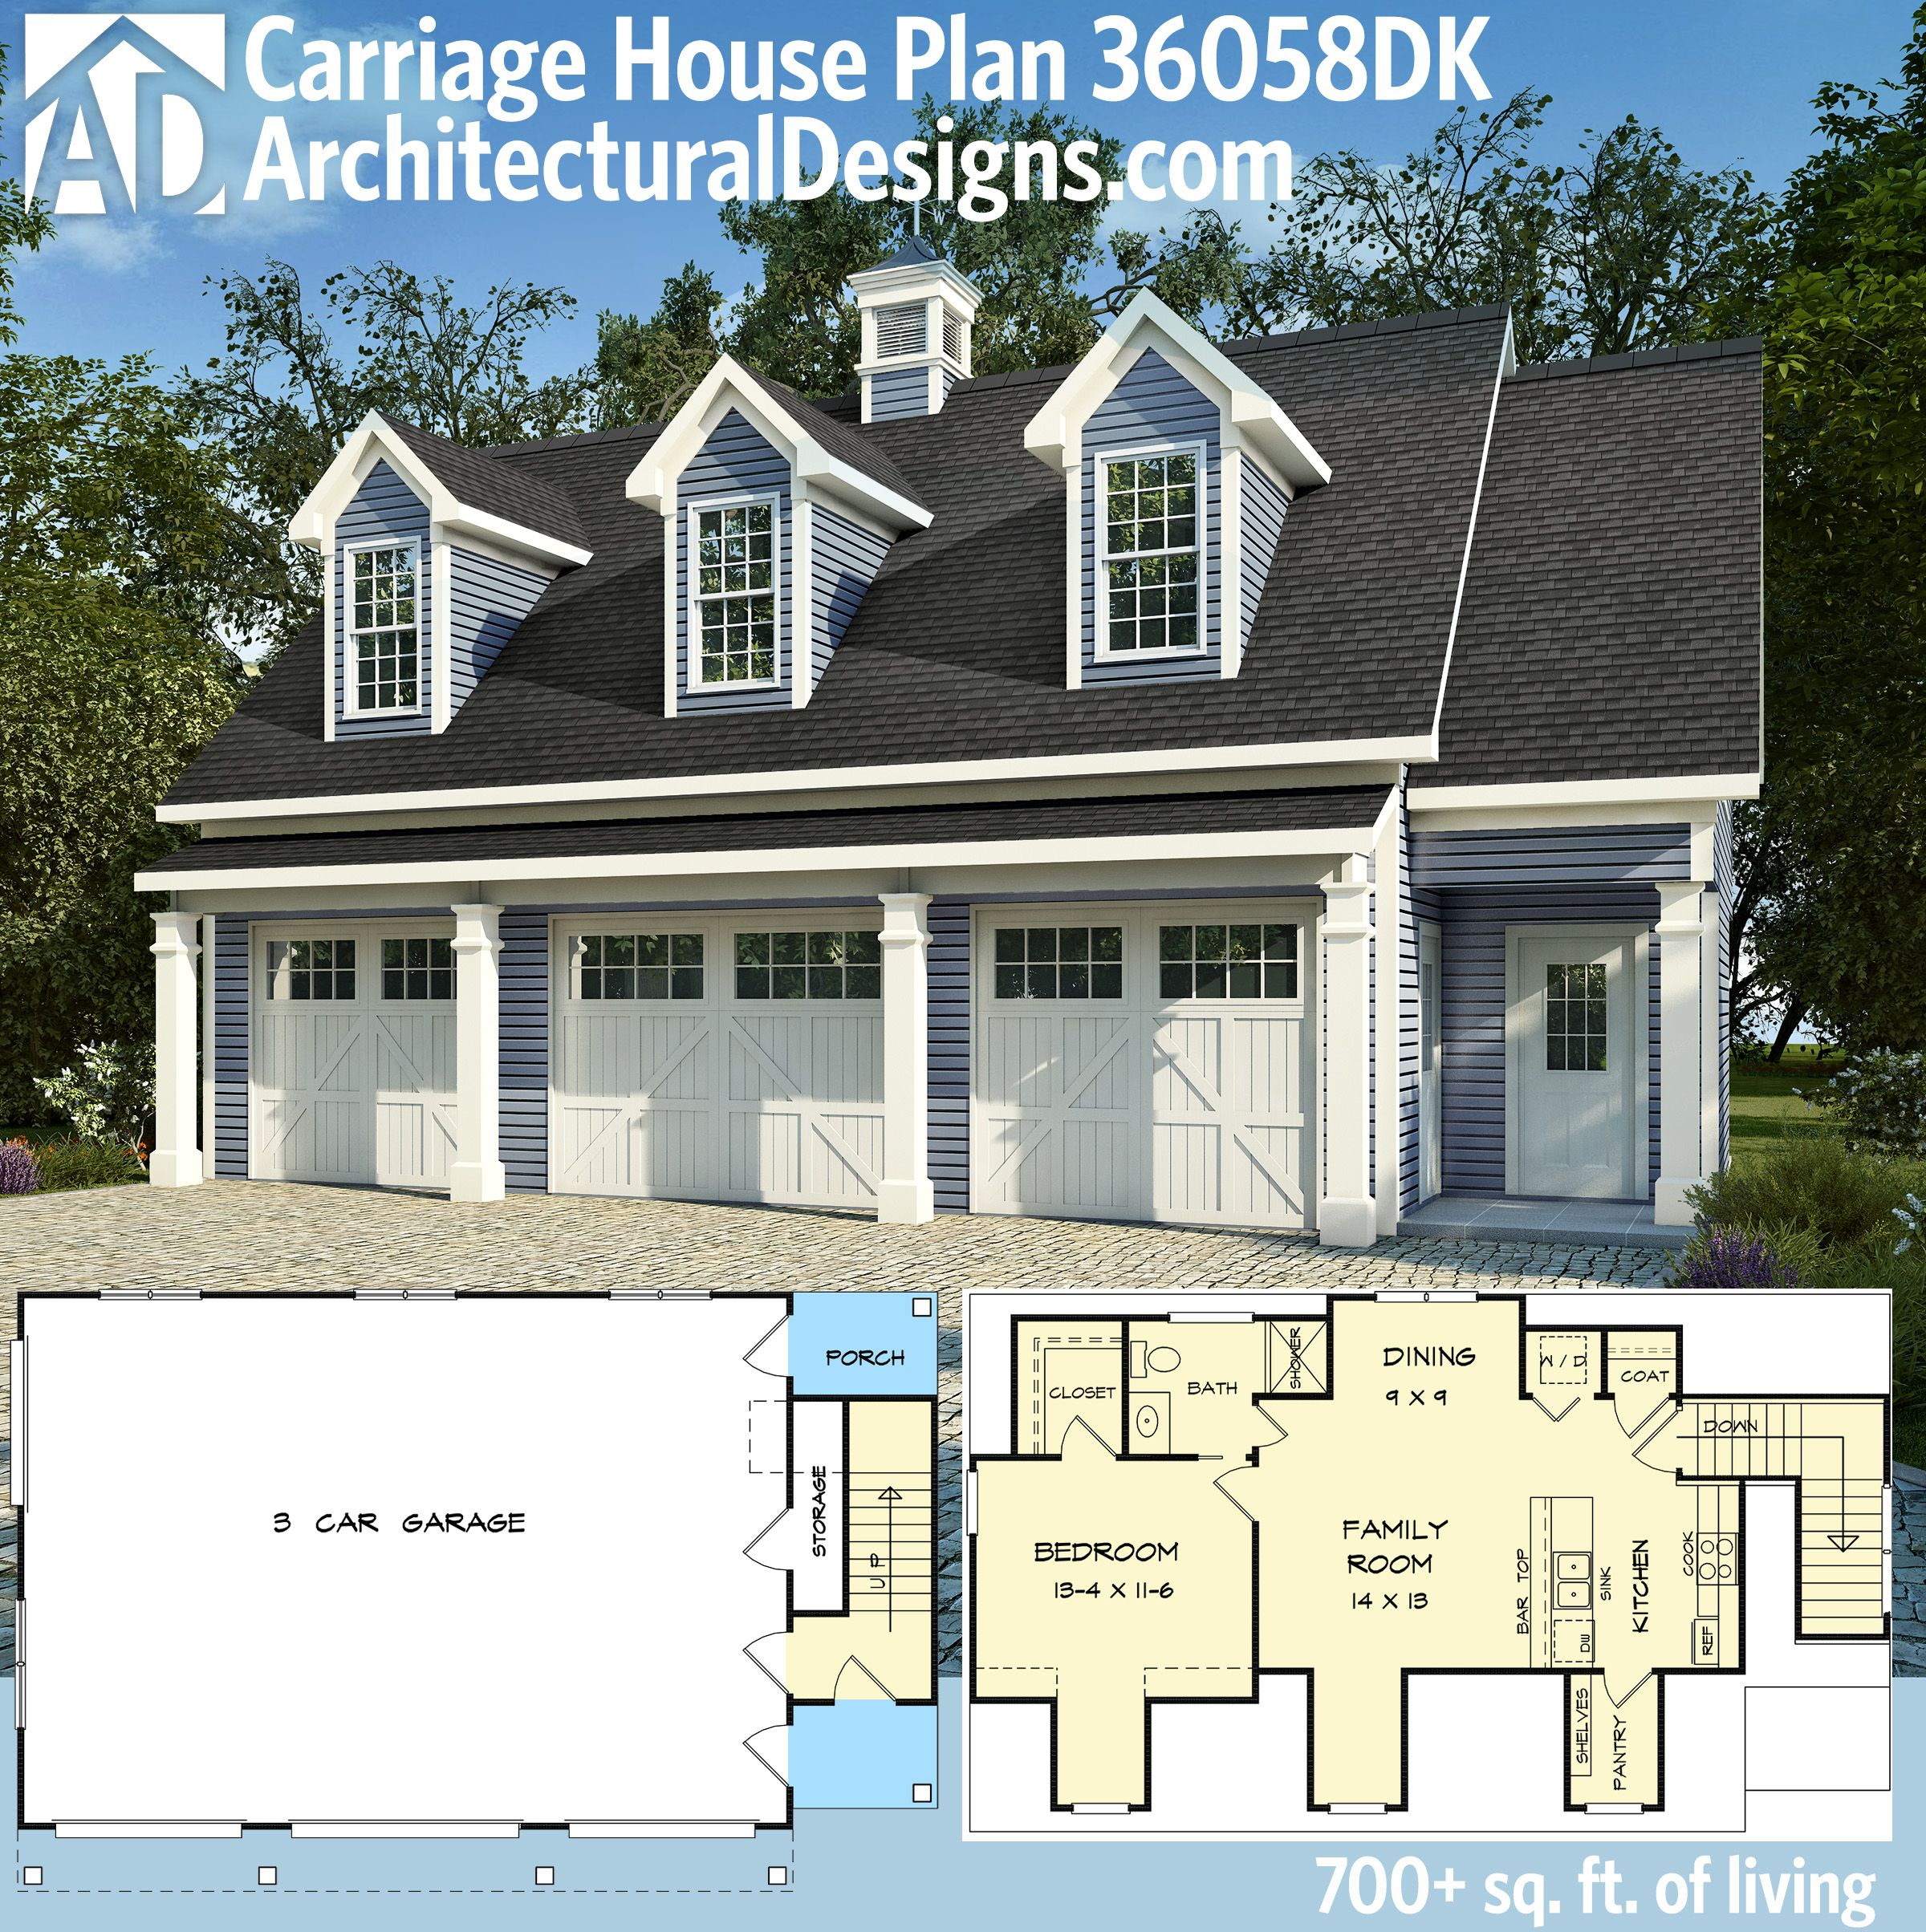 Plan 36058dk 3 car carriage house plan with 3 dormers for A frame house plans with attached garage